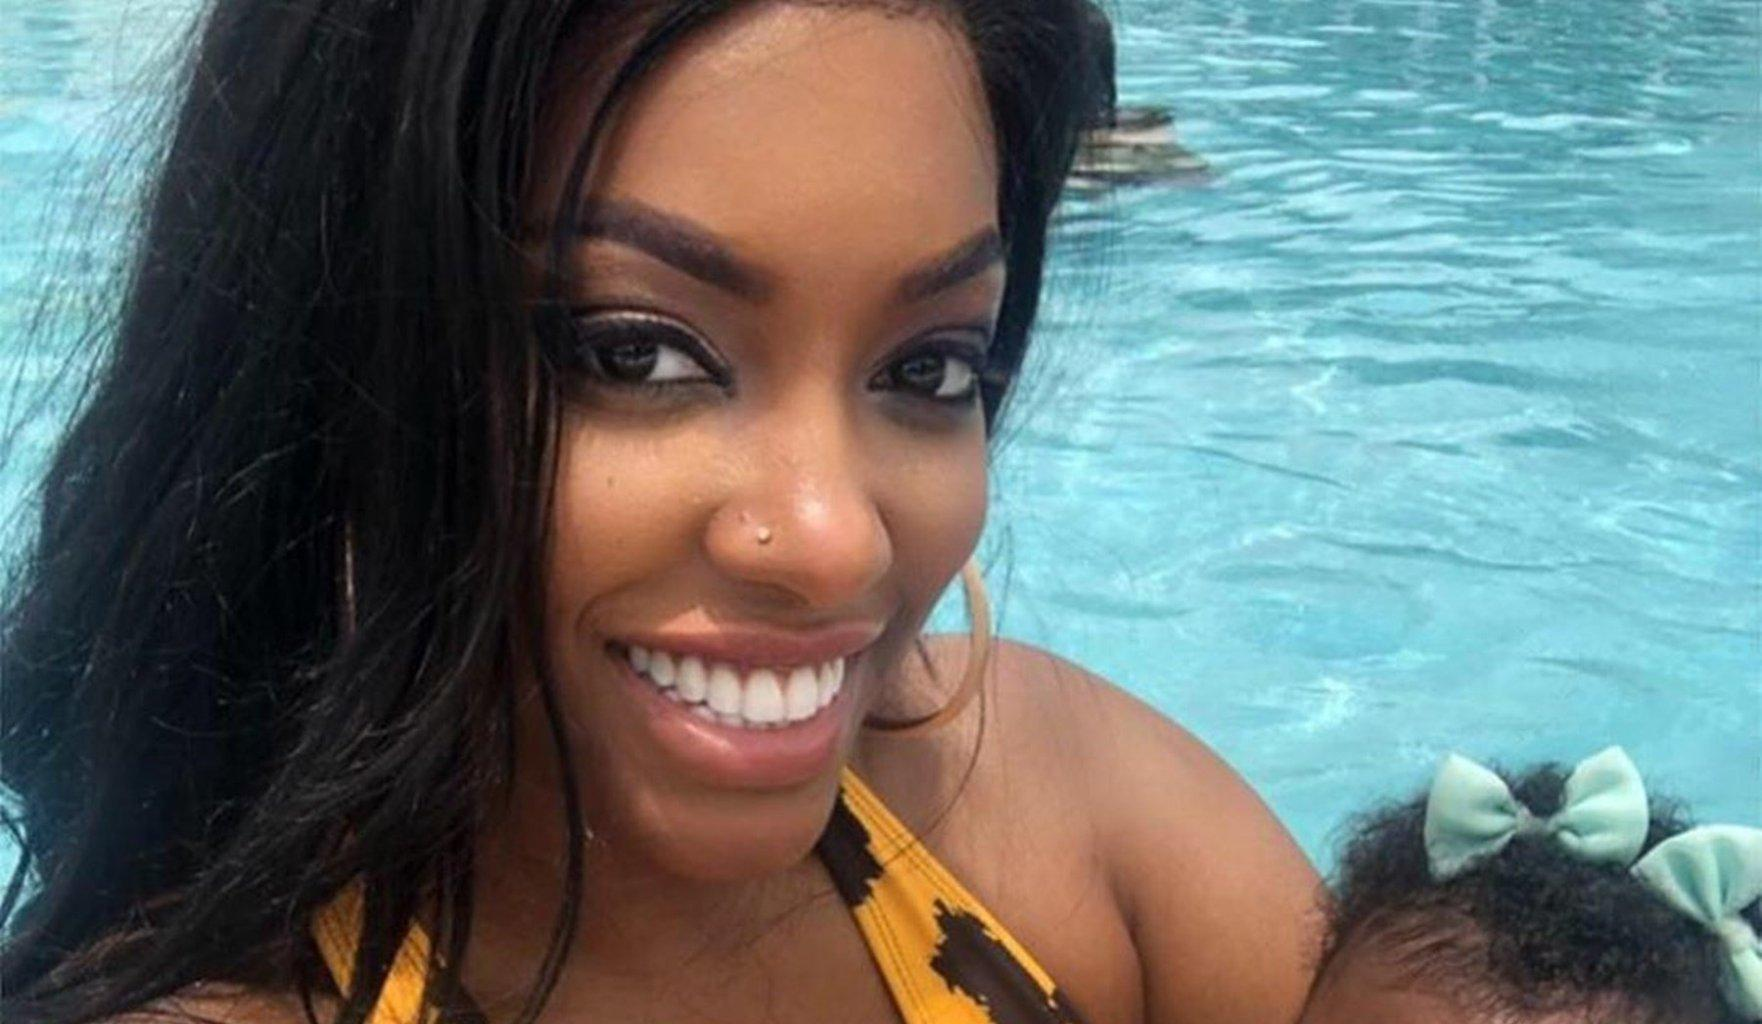 Porsha Williams' Recent Video Featuring Unbothered Pilar Jhena Has Fans Laughing